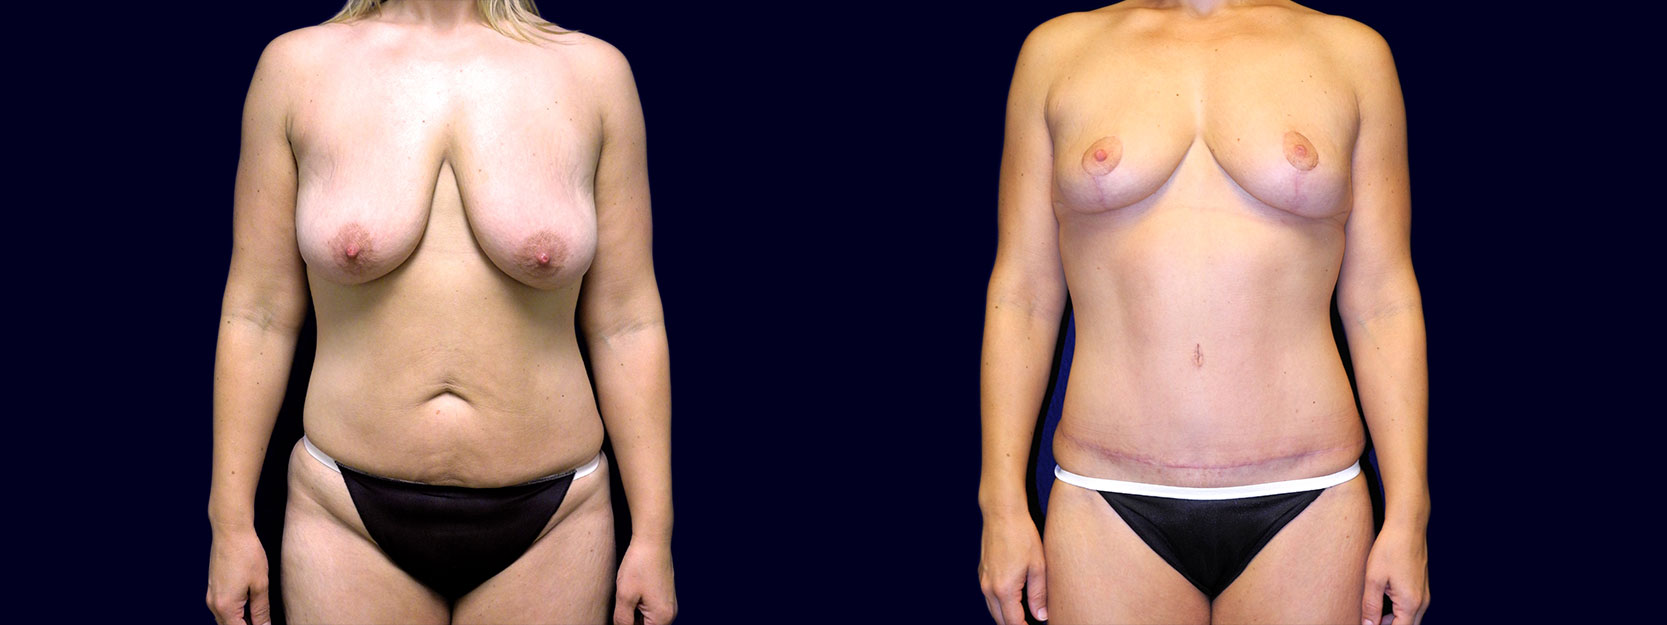 Frontal View - Breast Lift & Tummy Tuck After Weight Loss